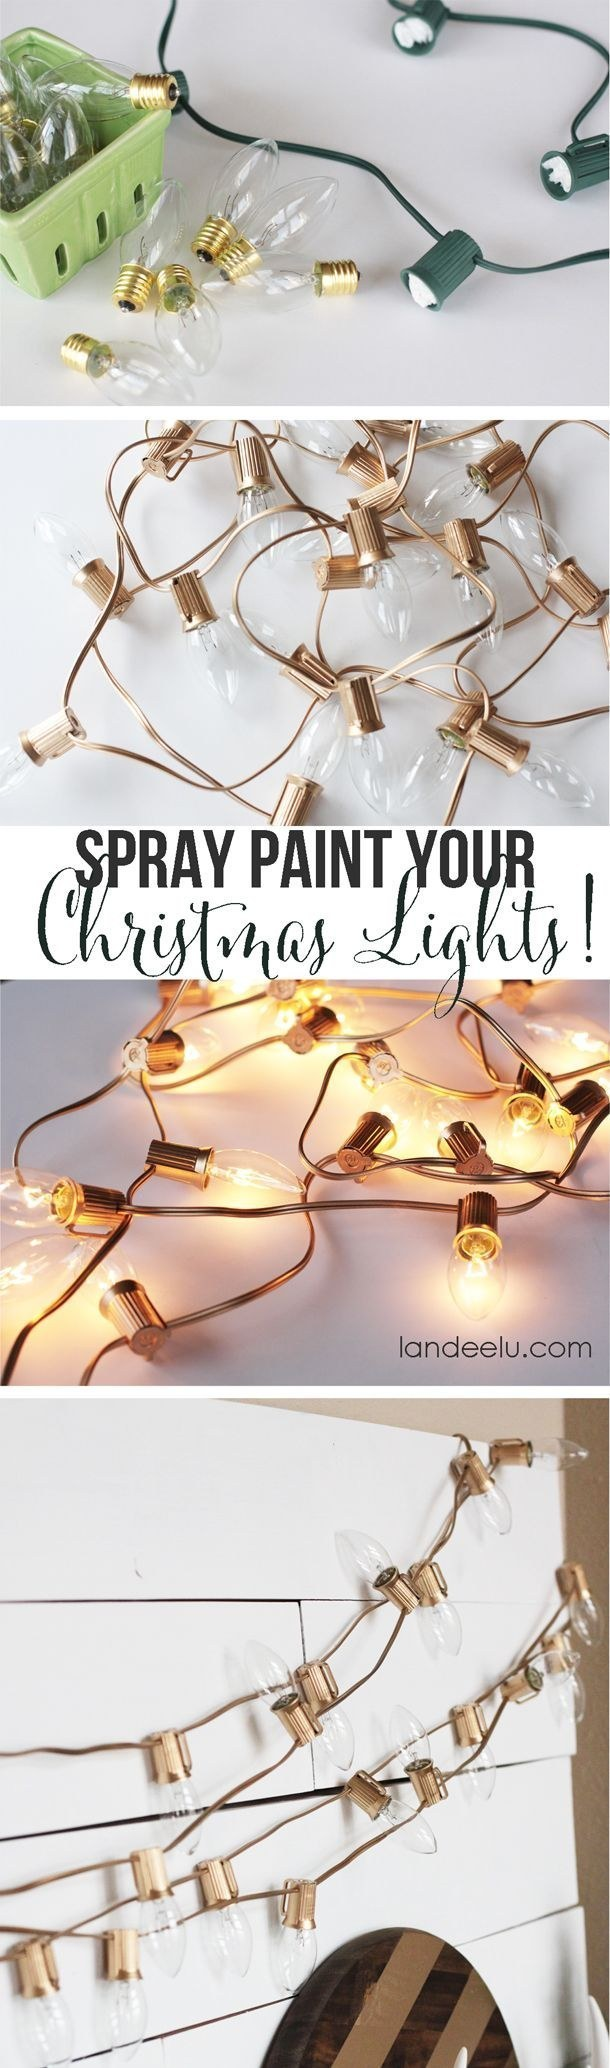 AD-Super-Cozy-Ways-To-Use-String-Lights-In-Your-Home-18